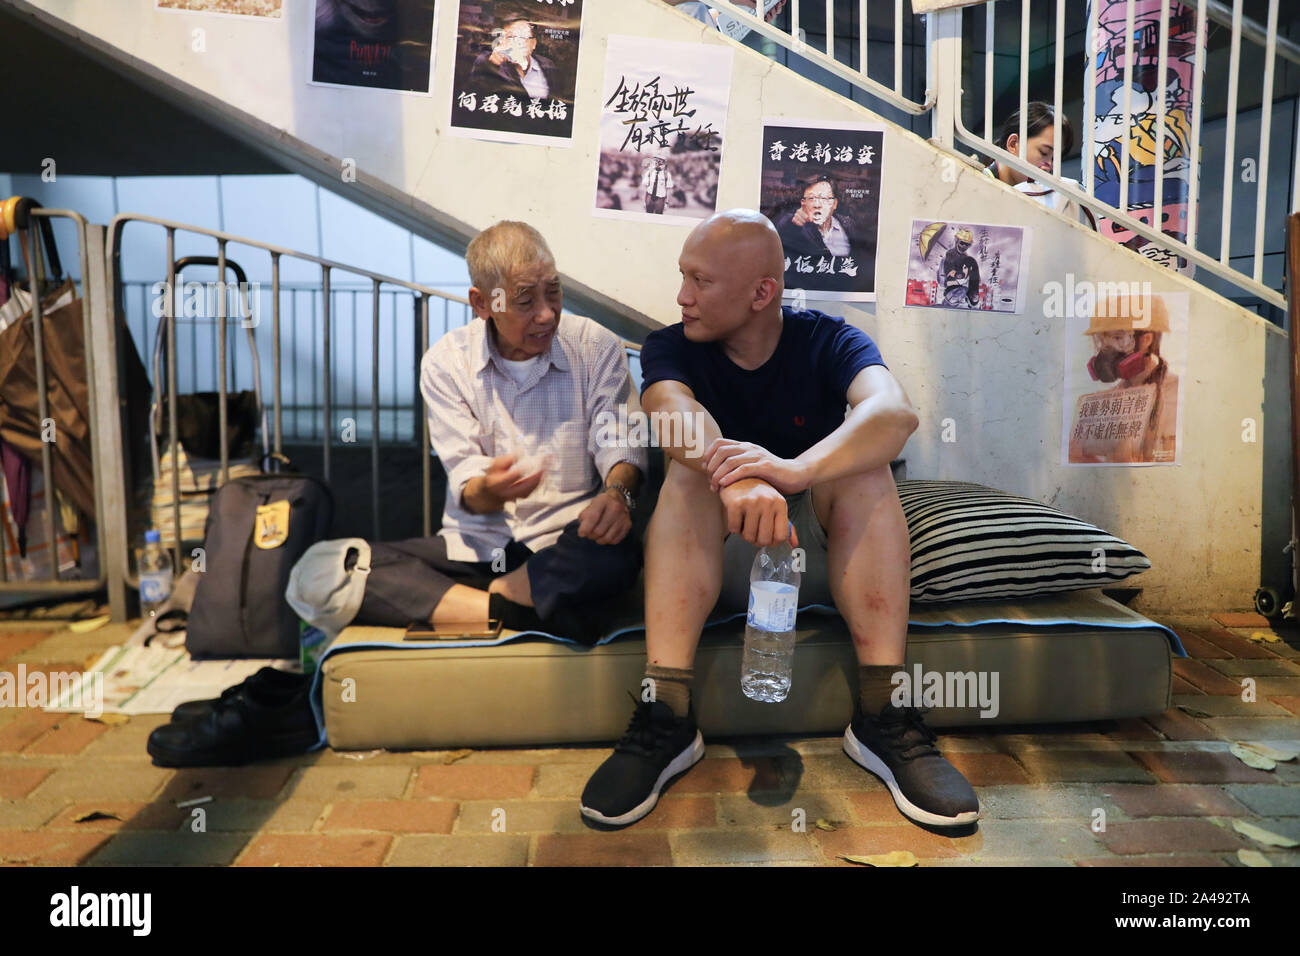 Hong Kong, China. 12th Oct, 2019. Two seniors chatting outside police headquarters during the protests.Hong Kong Protests continue for the 5th month. More demonstrations and rallies have taken place including the silver hair, a 48 hours strike of sitting peacefully outside police headquarters. Credit: SOPA Images Limited/Alamy Live News Stock Photo